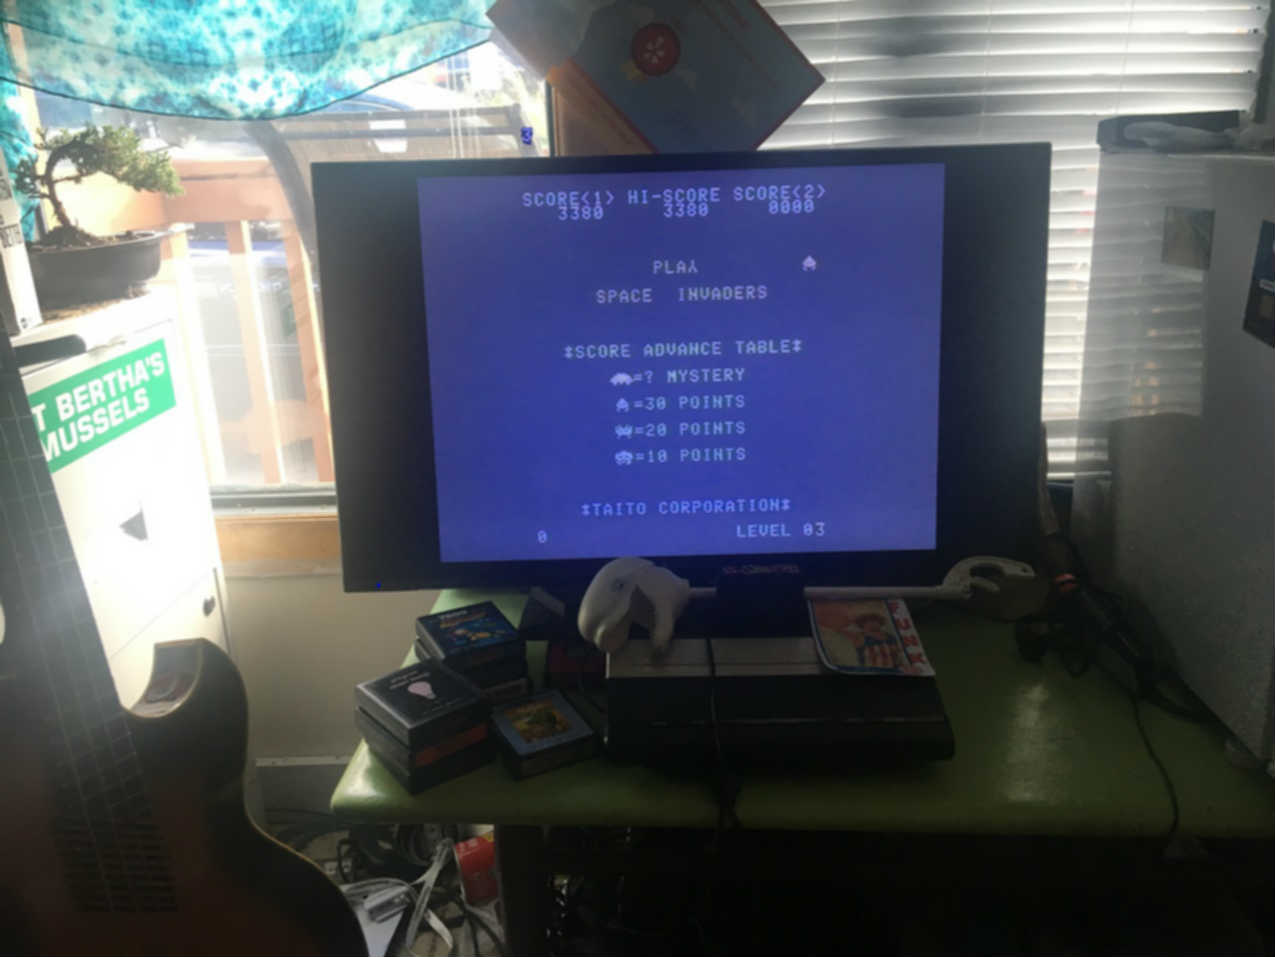 CousinVinnie: Space Invaders [Normal/Fixed Shields/Invisible] (Atari 7800) 3,380 points on 2017-10-15 14:34:13